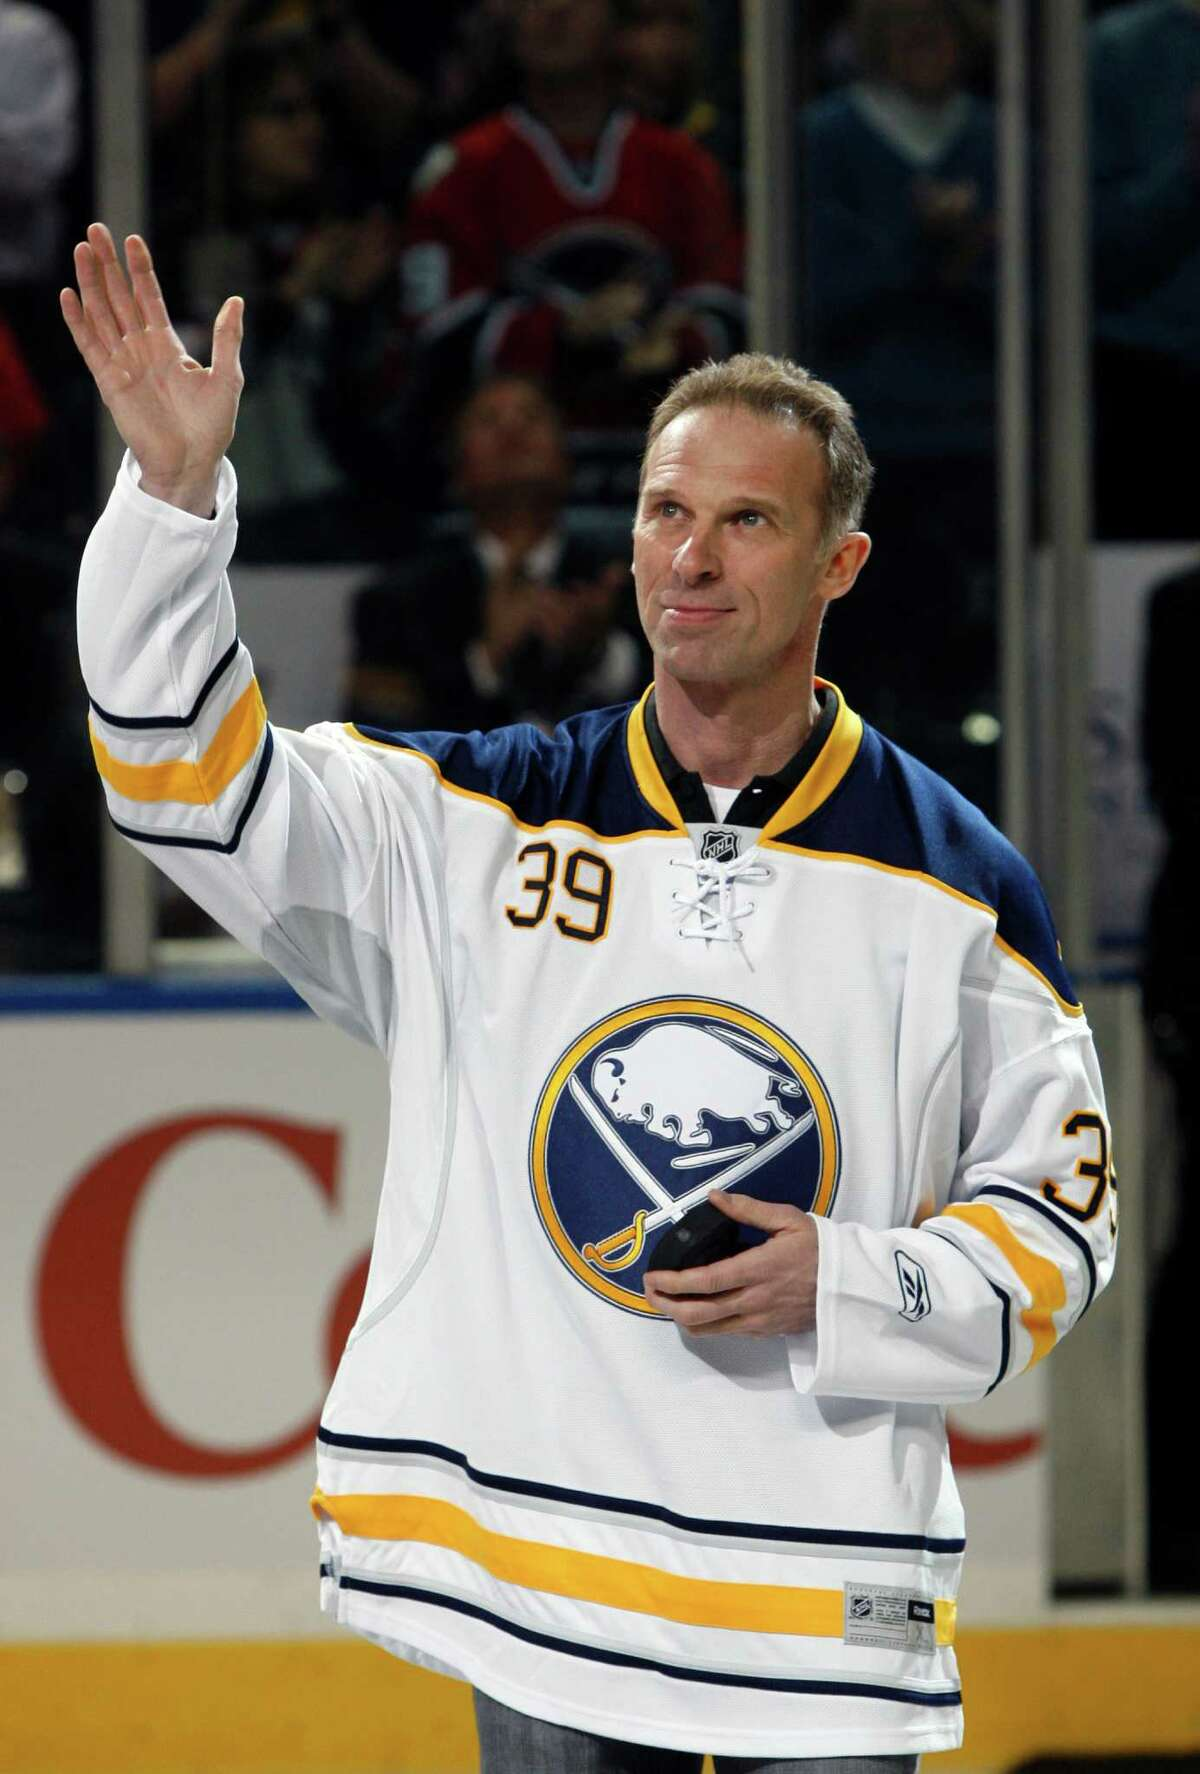 FILE - In this March 19, 2011 file photo, Buffalo Sabres former goalie Dominik Hasek waves to the fans during a pre-game ceremony before an NHL hockey game against the Atlanta Thrashers in Buffalo, N.Y. Hasek is expected to be part of the class of 2014 at the Hockey Hall of Fame, which will be announced Monday, June 23, 2014. (AP Photo/David Duprey, File) ORG XMIT: NY116